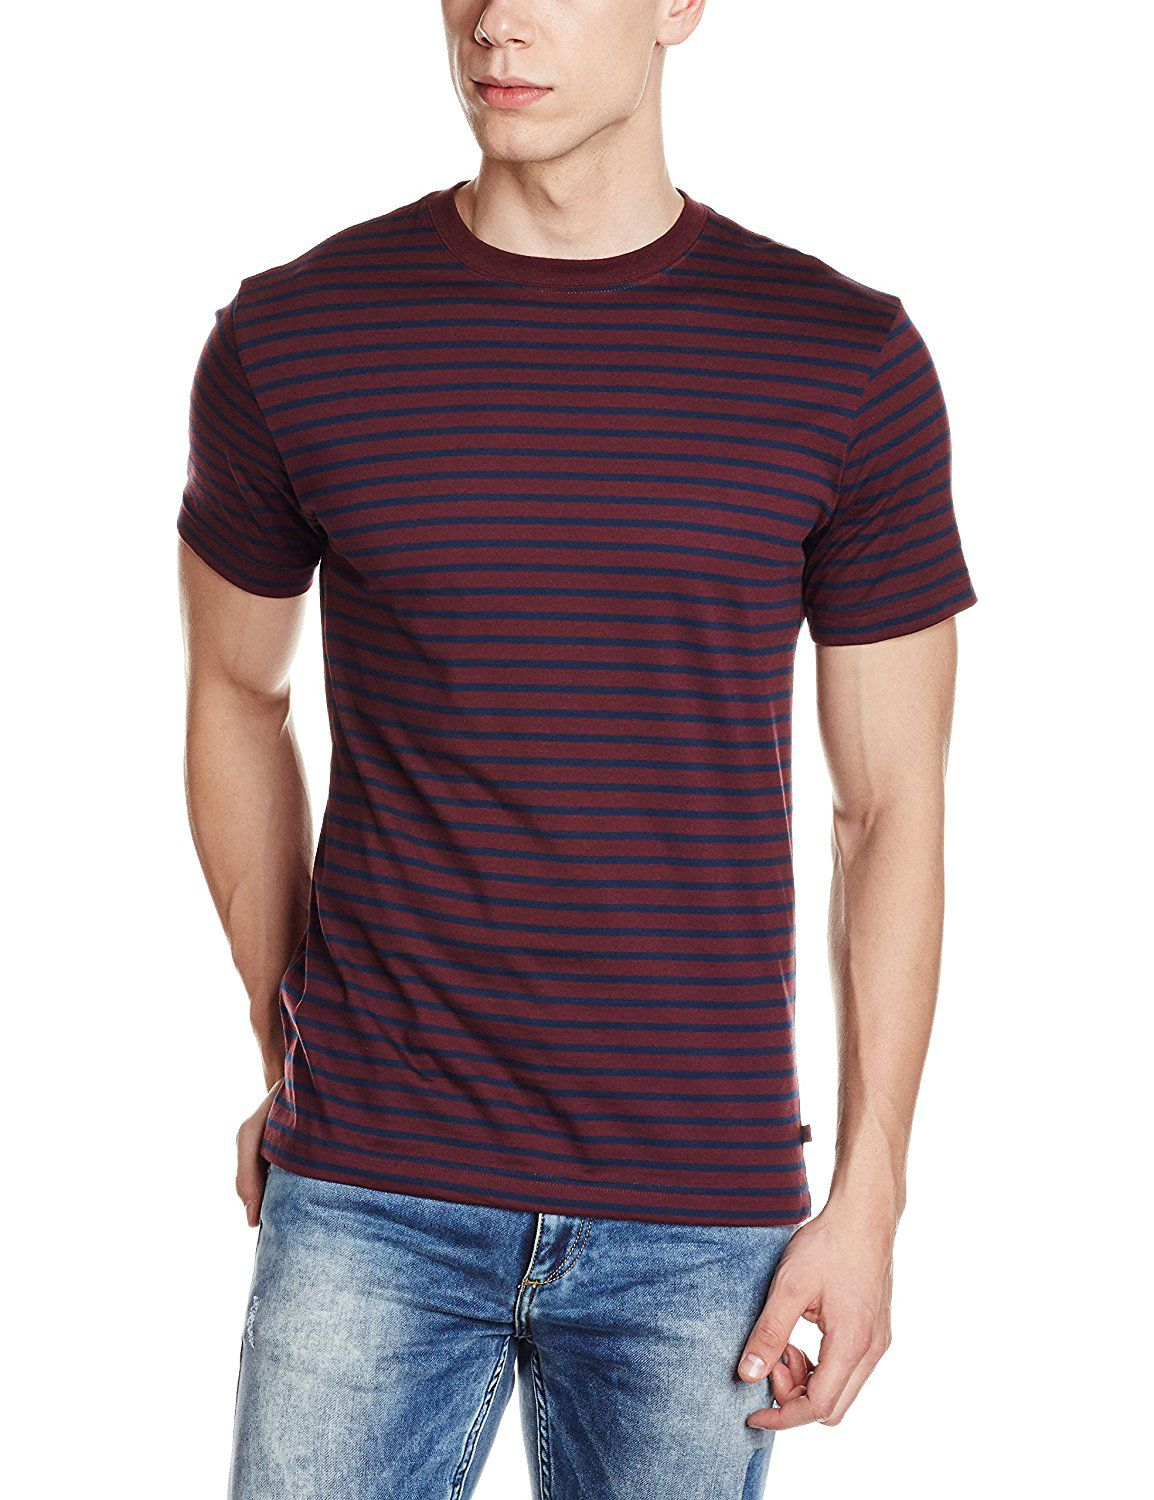 Jockey International Brown Round T-Shirt Pack of 1